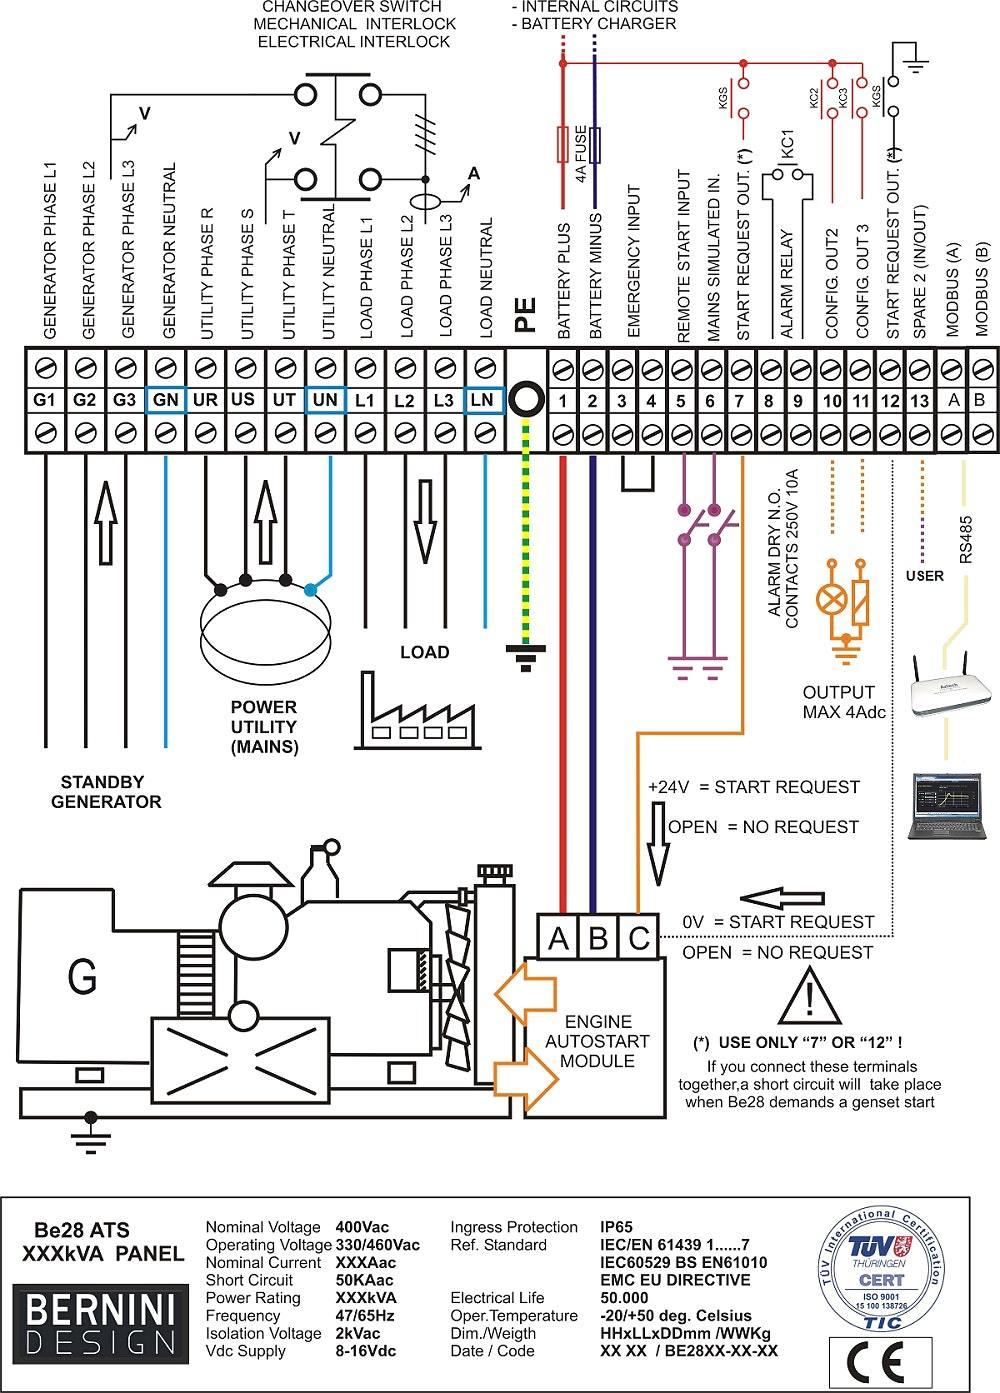 generac automatic transfer switch wiring diagram Collection-an Transfer Switch Wiring Diagram Collection Generac Automatic Transfer Switch Wiring Diagram At To 11 7-a